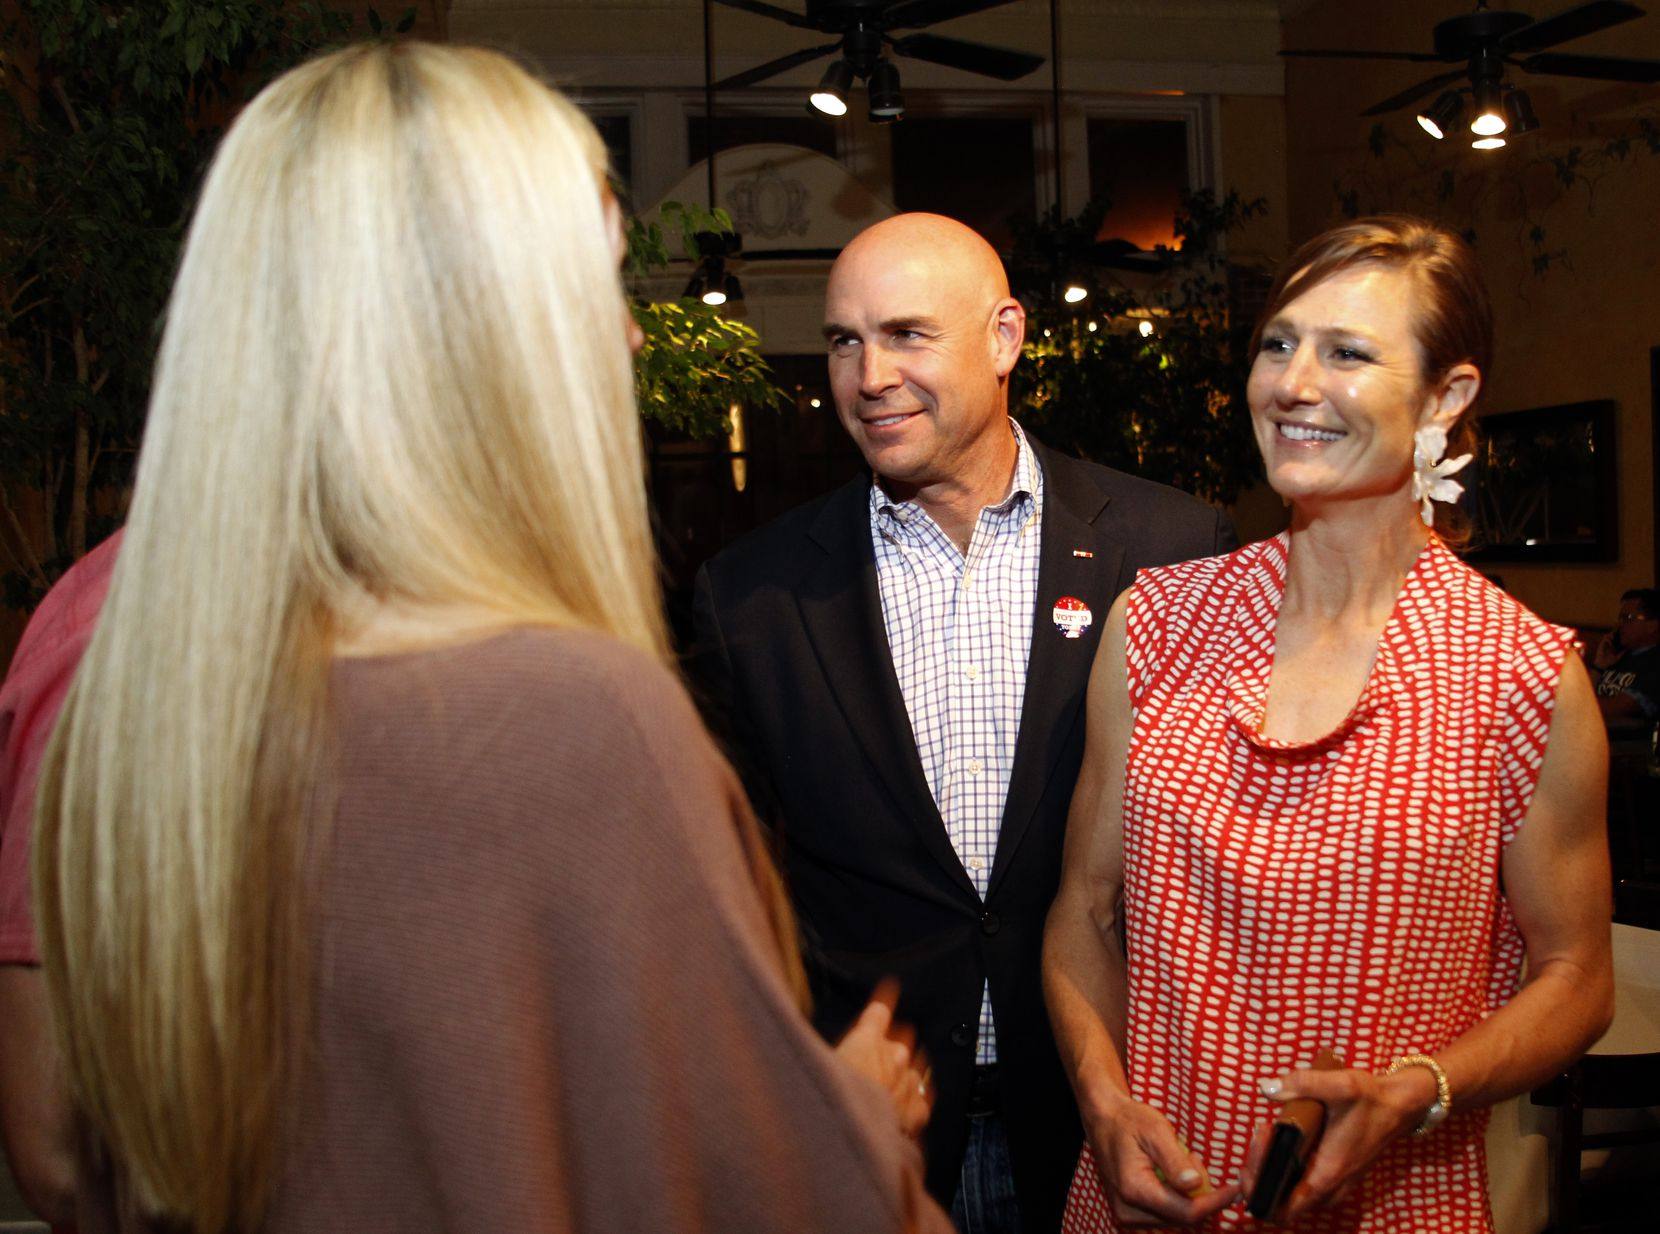 6th Congressional District candidate Jake Ellzey, along with wife Shelby, visited with supporters during Ellzey's election night party on May 1 at Dove Nest Restaurant in Waxahachie.